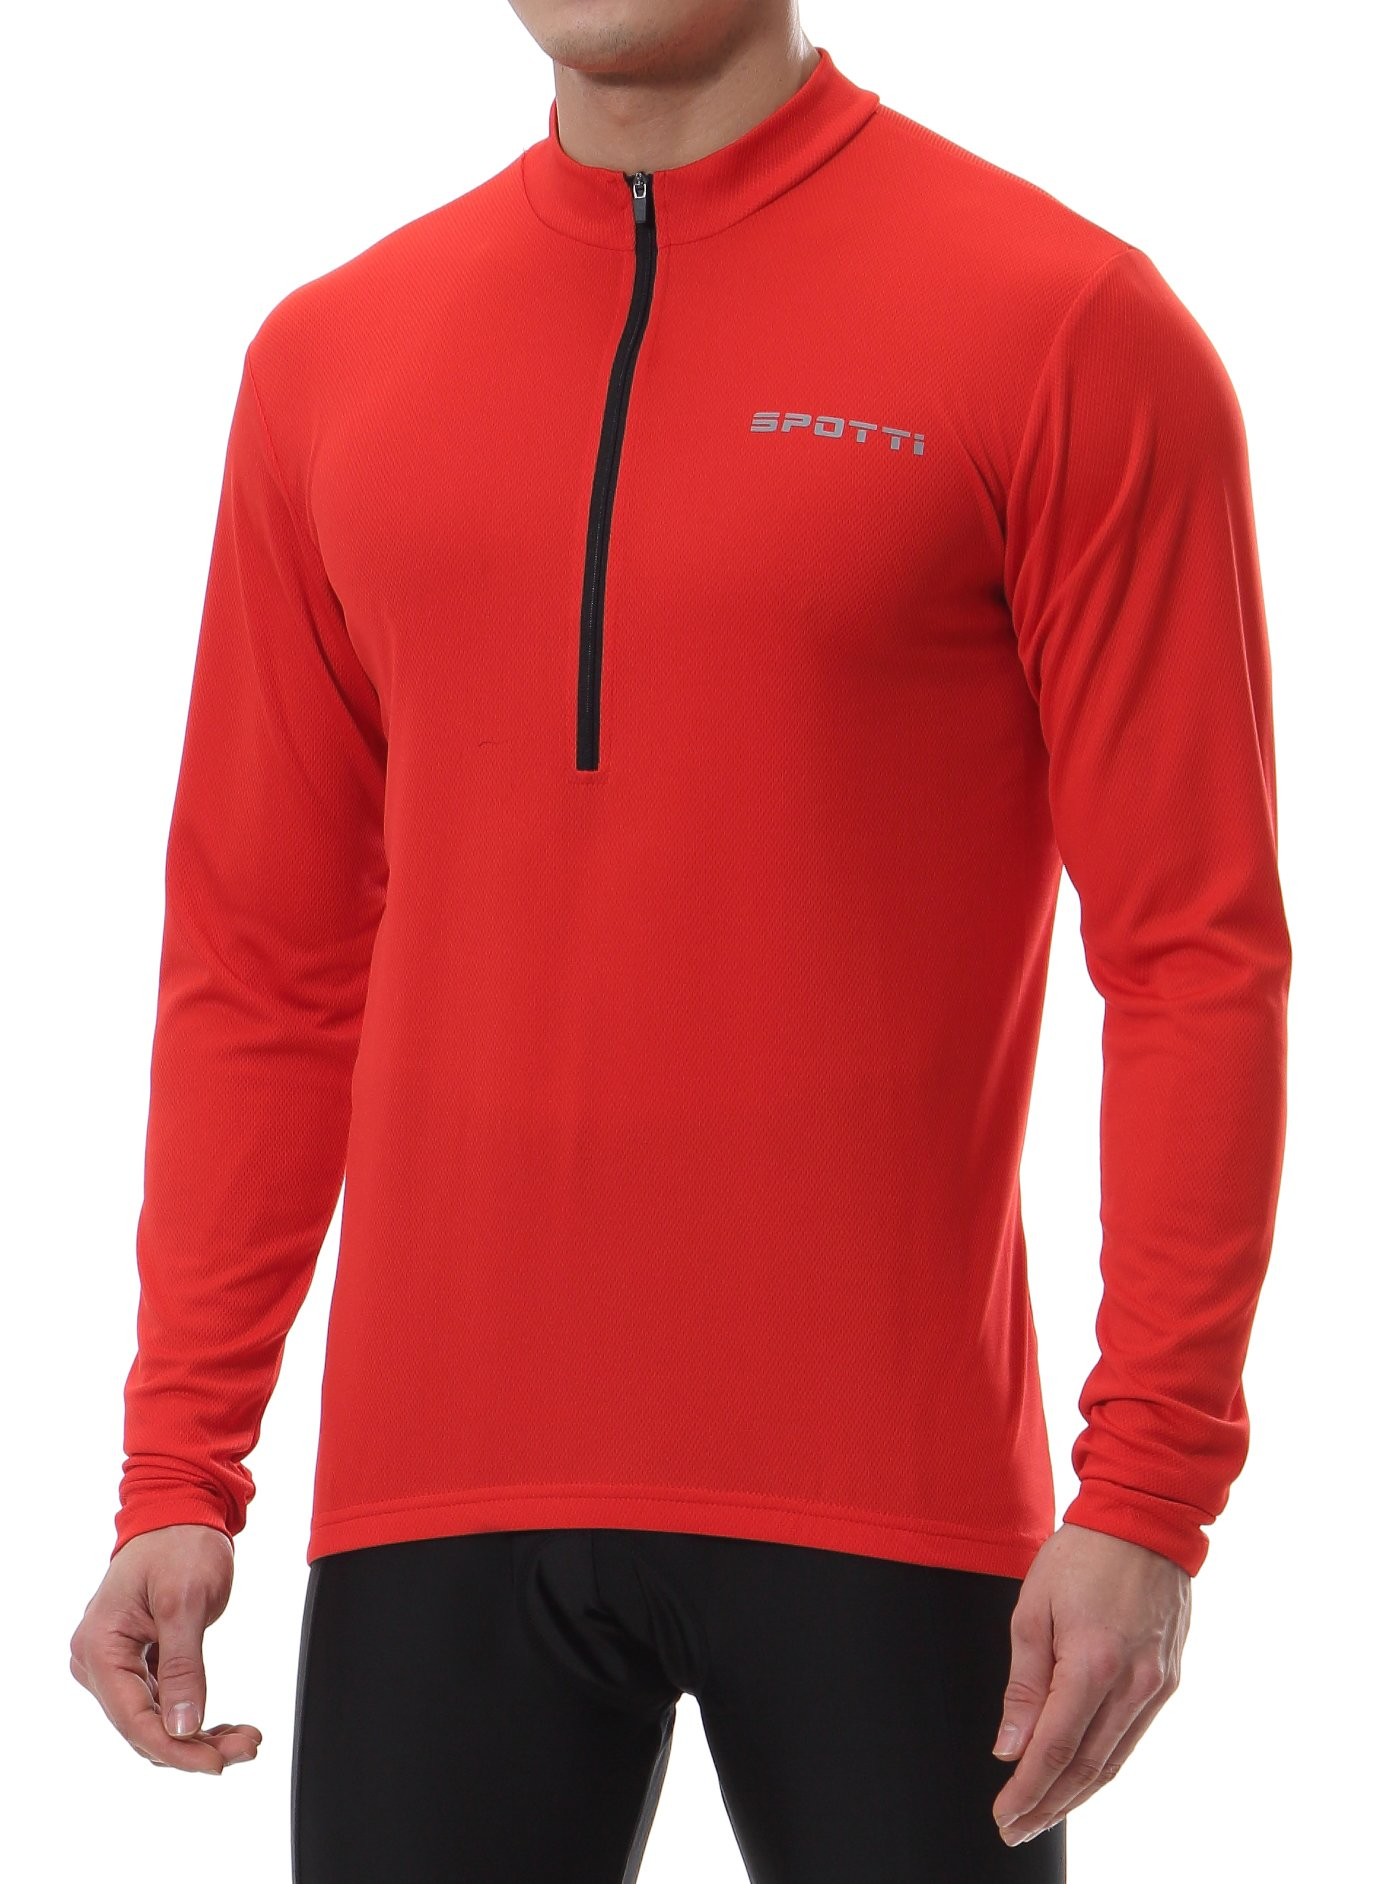 Spotti Men's Long Sleeve Cycling Jersey, Bike Biking Shirt- Breathable and Quick Dry (Chest 36-38 - Small, Red)